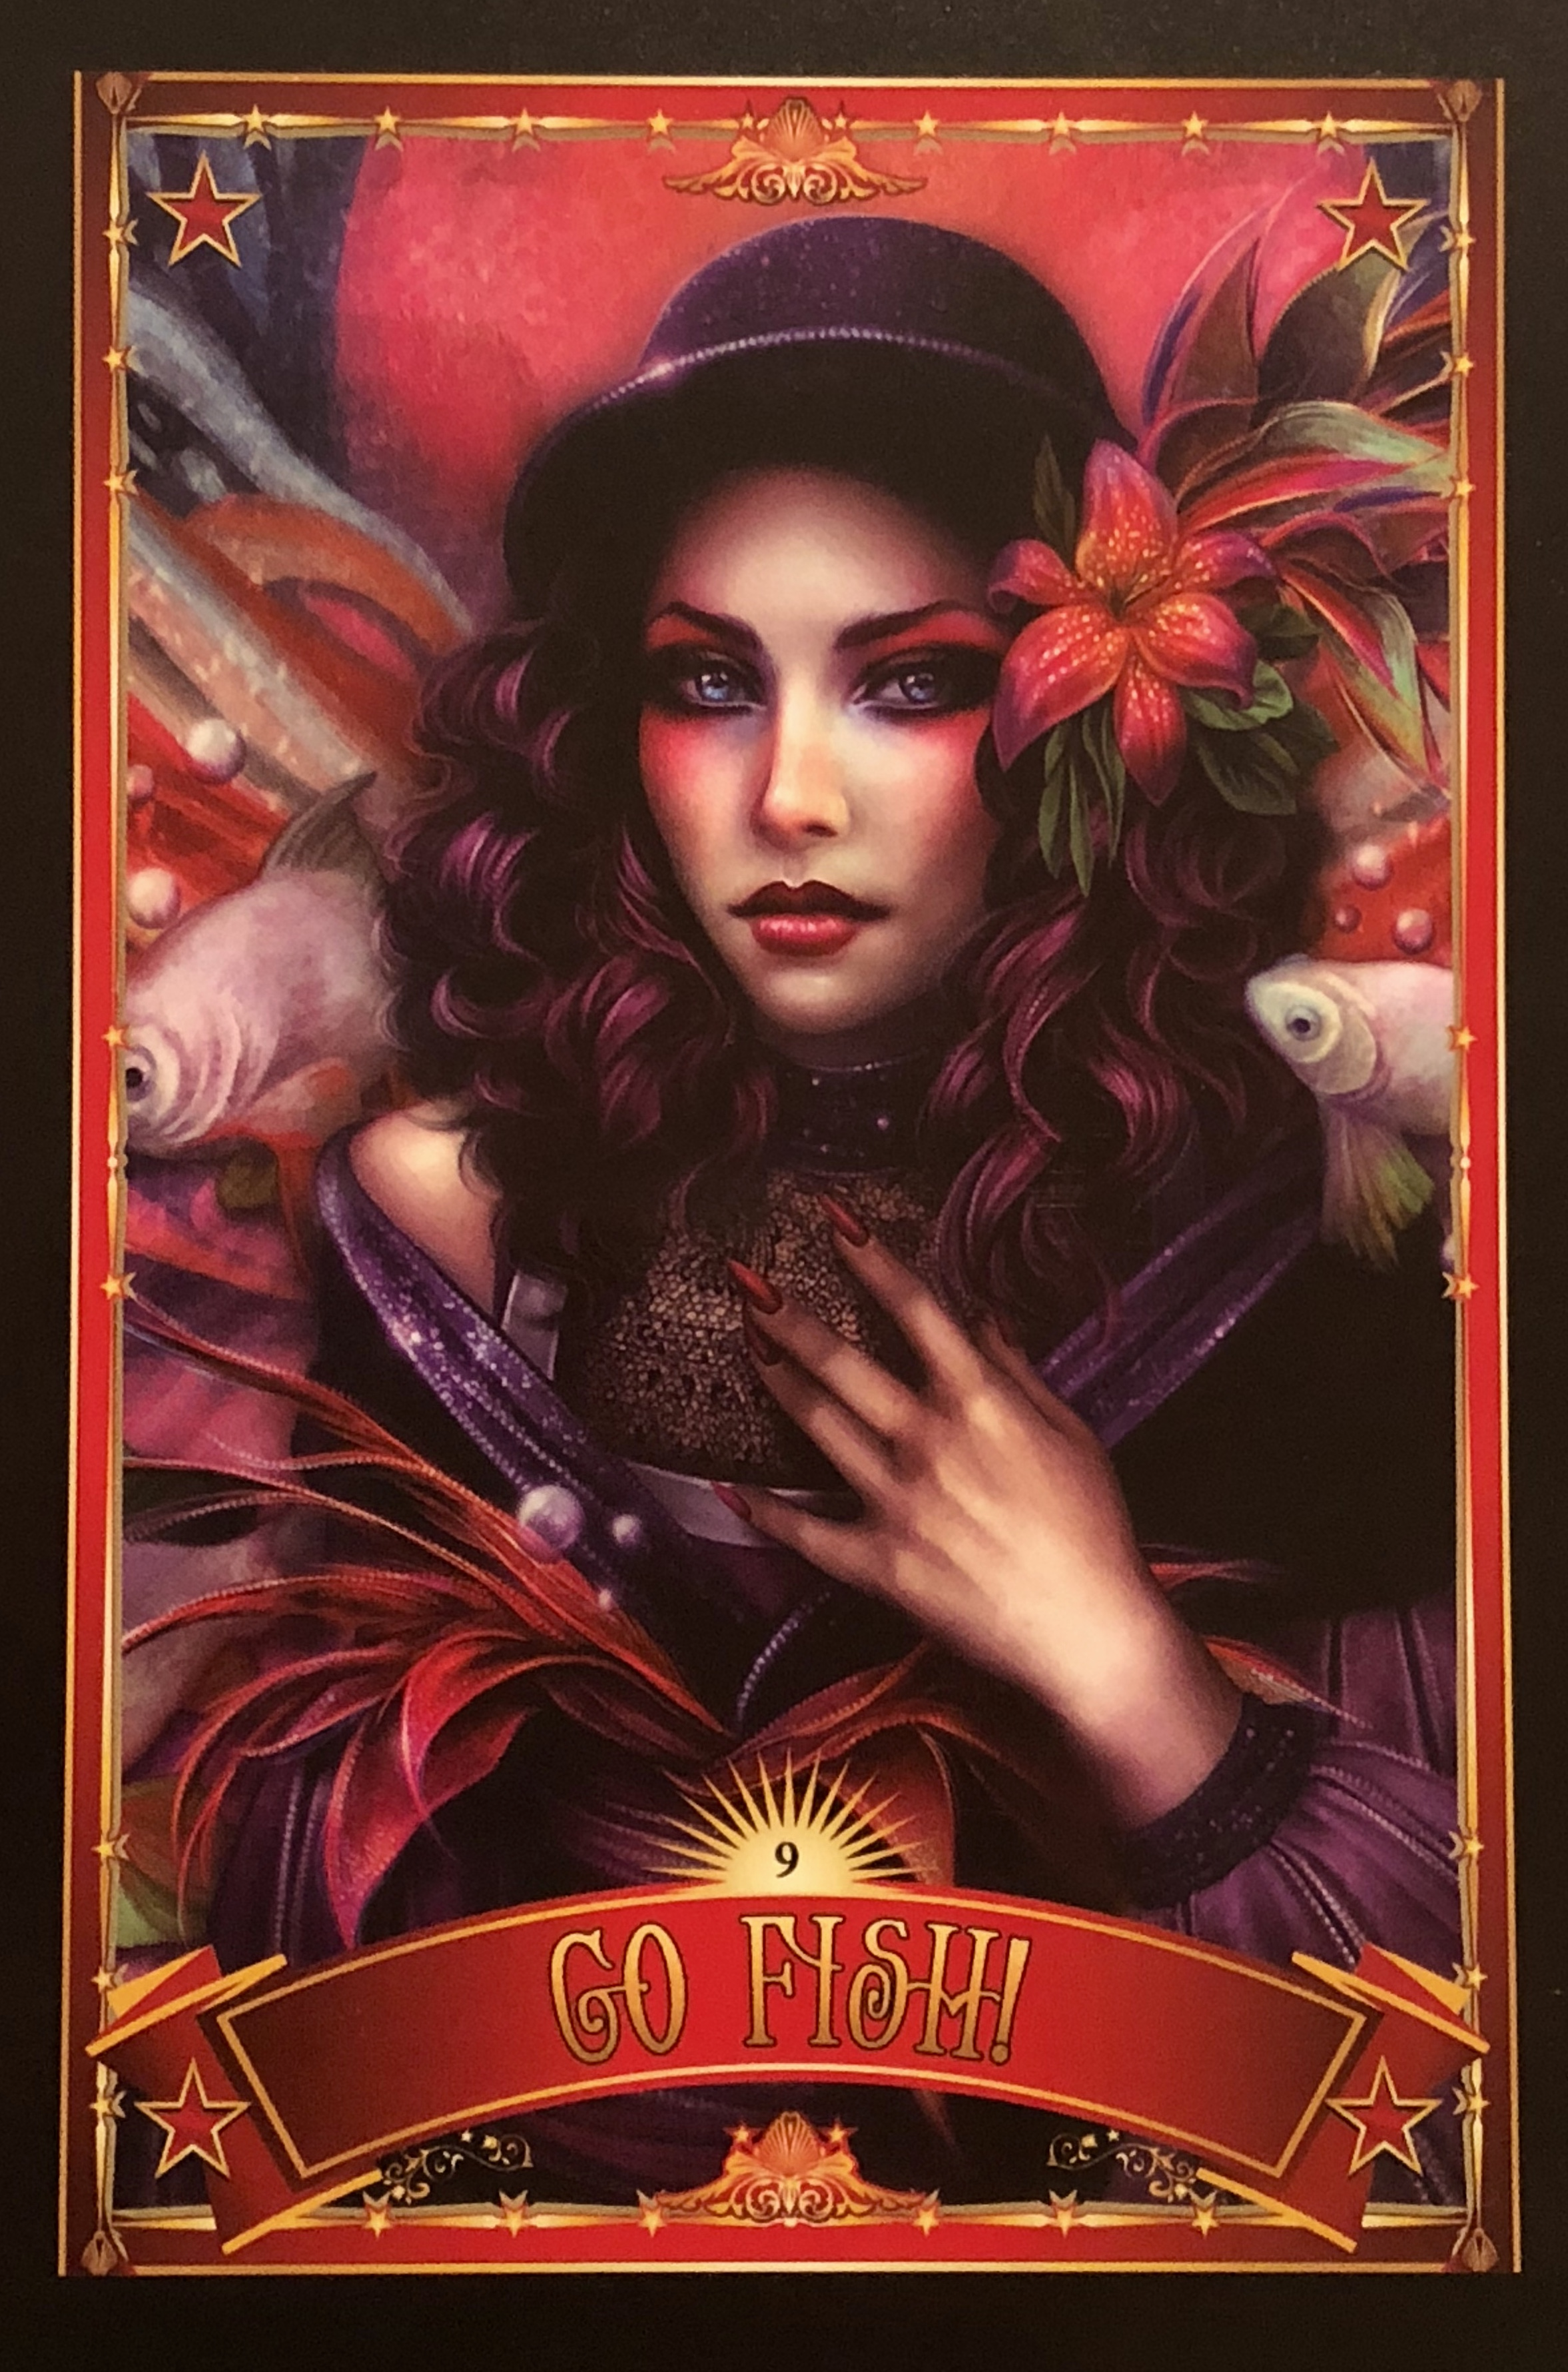 Archangel Oracle Divine Guidance: GO FISH! Archangel Oracle – Divine Guidance